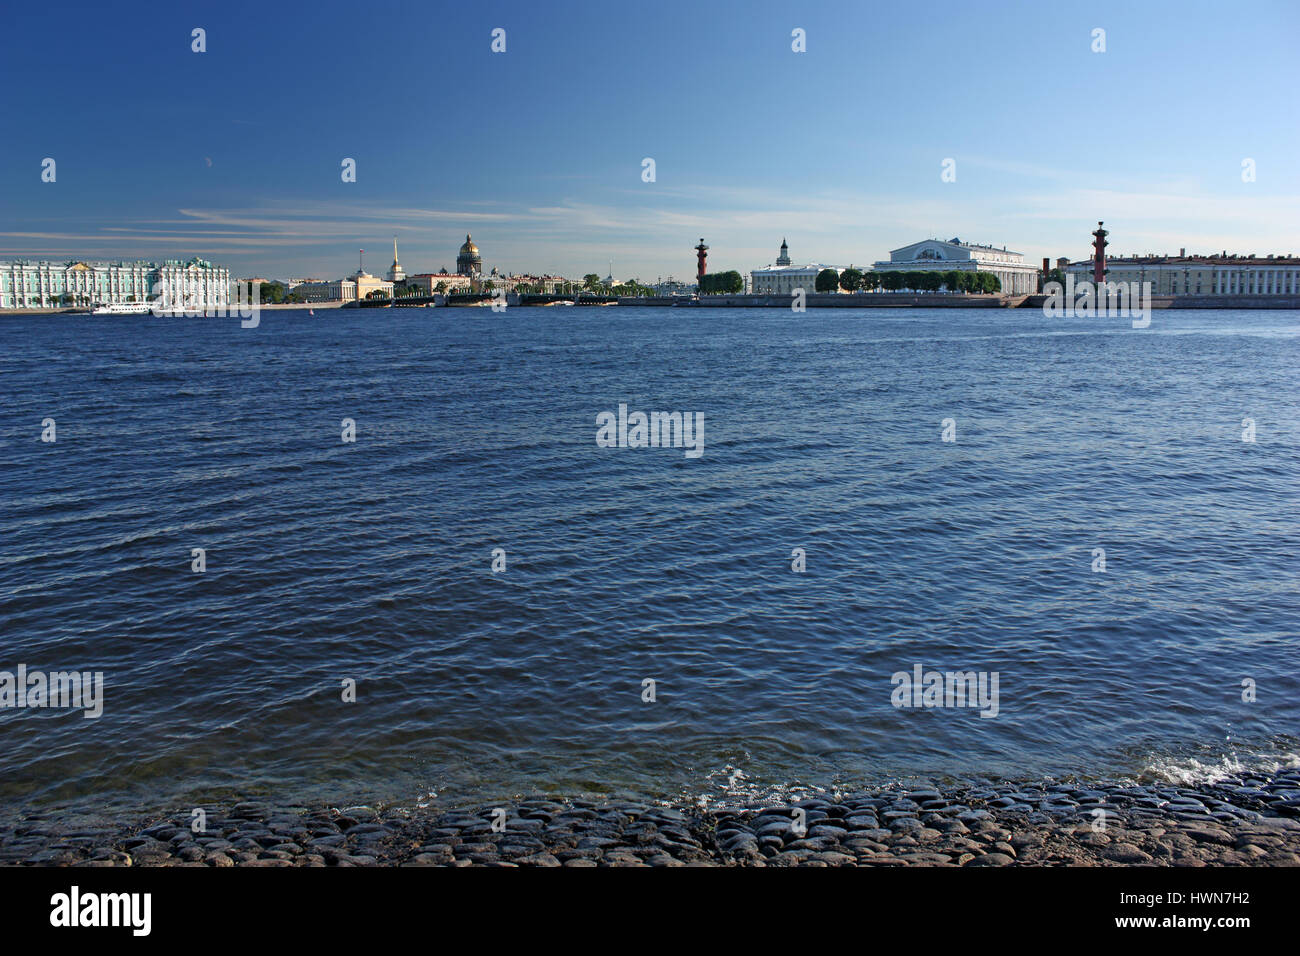 Saint-Petersburg. Panoramic views of the Palace quay (Winter Palace - Hermitage, Admiralty, St. Isaac's Cathedral, - Stock Image